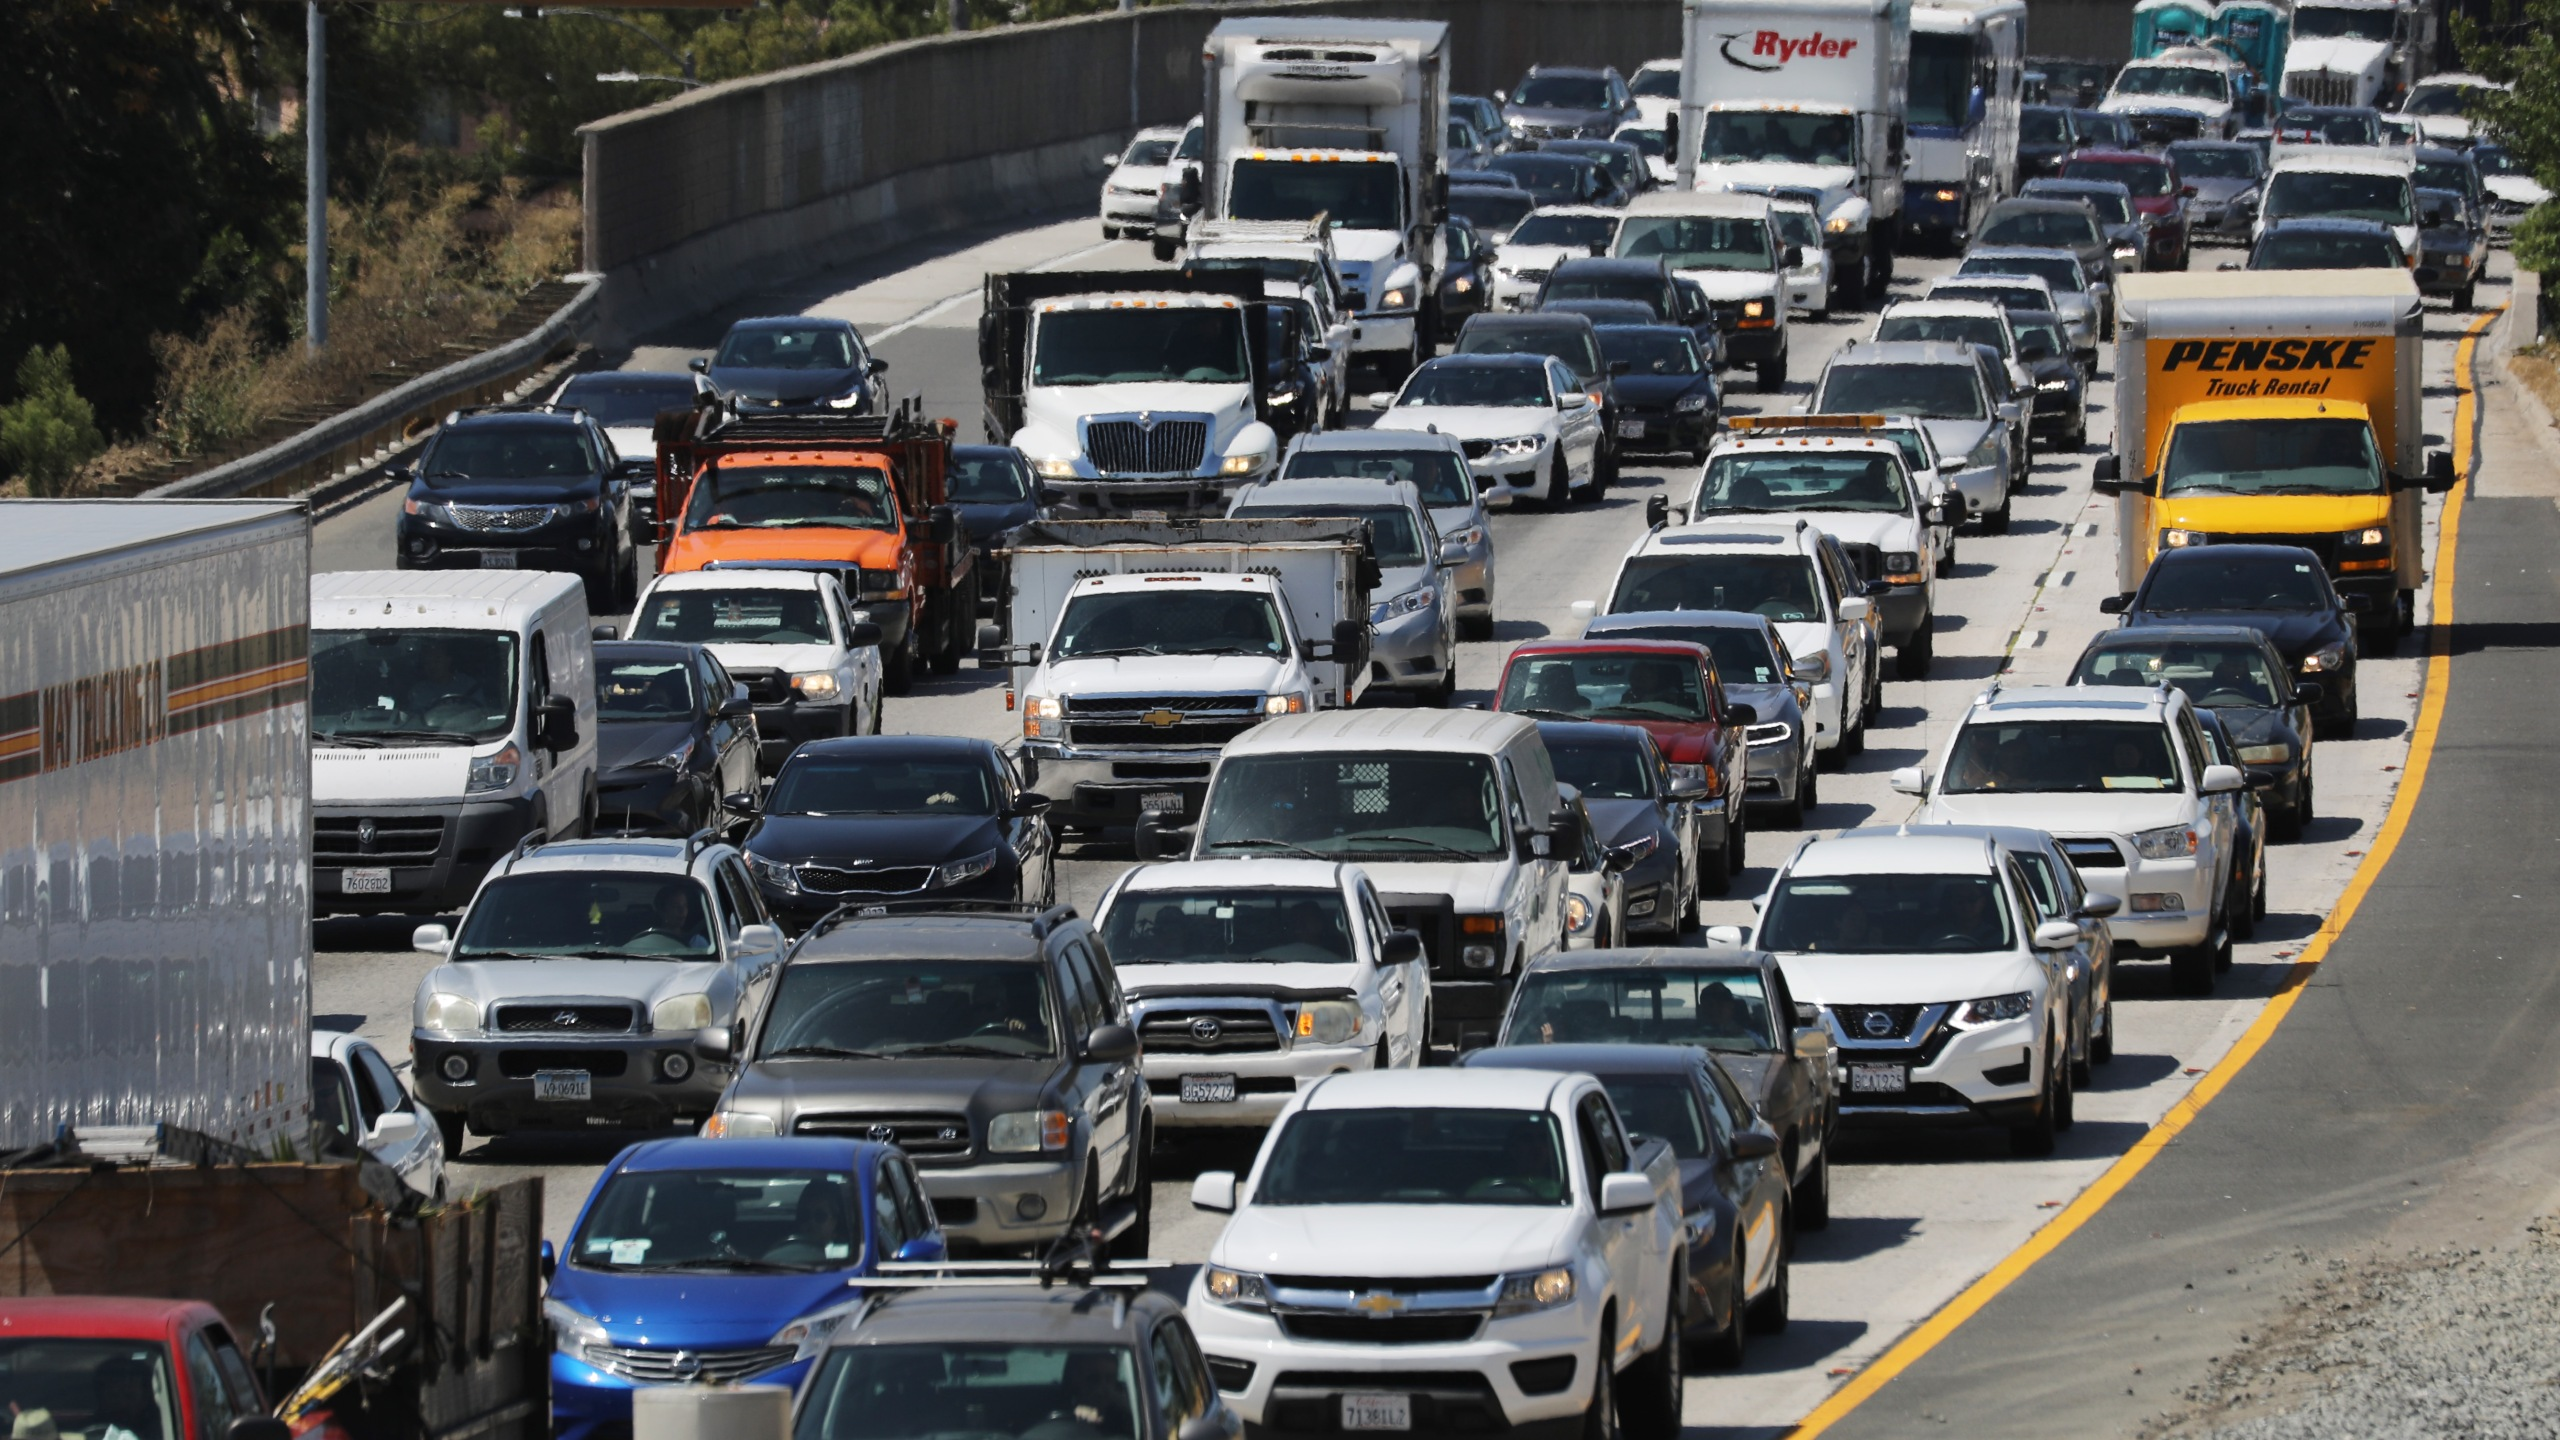 Drivers make their way on the US 101 freeway on August 30, 2019 in Los Angeles. (Credit: Mario Tama/Getty Images)